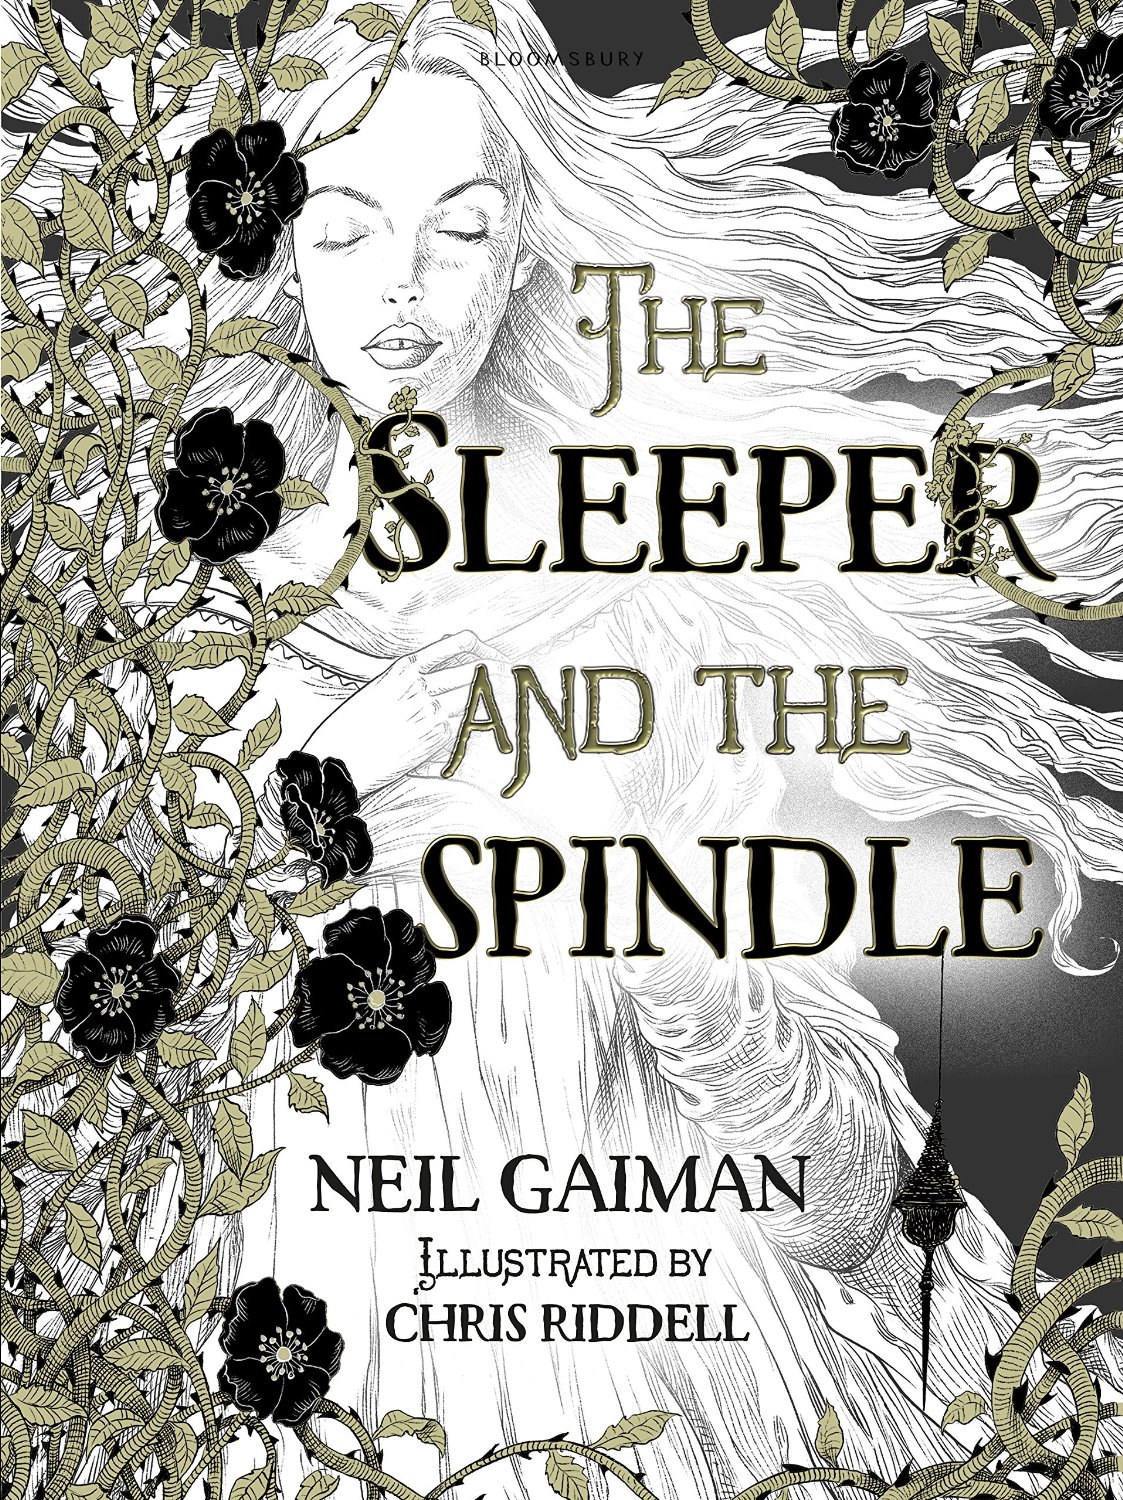 Audiobook Review | The Sleeper and the Spindle by Neil Gaiman